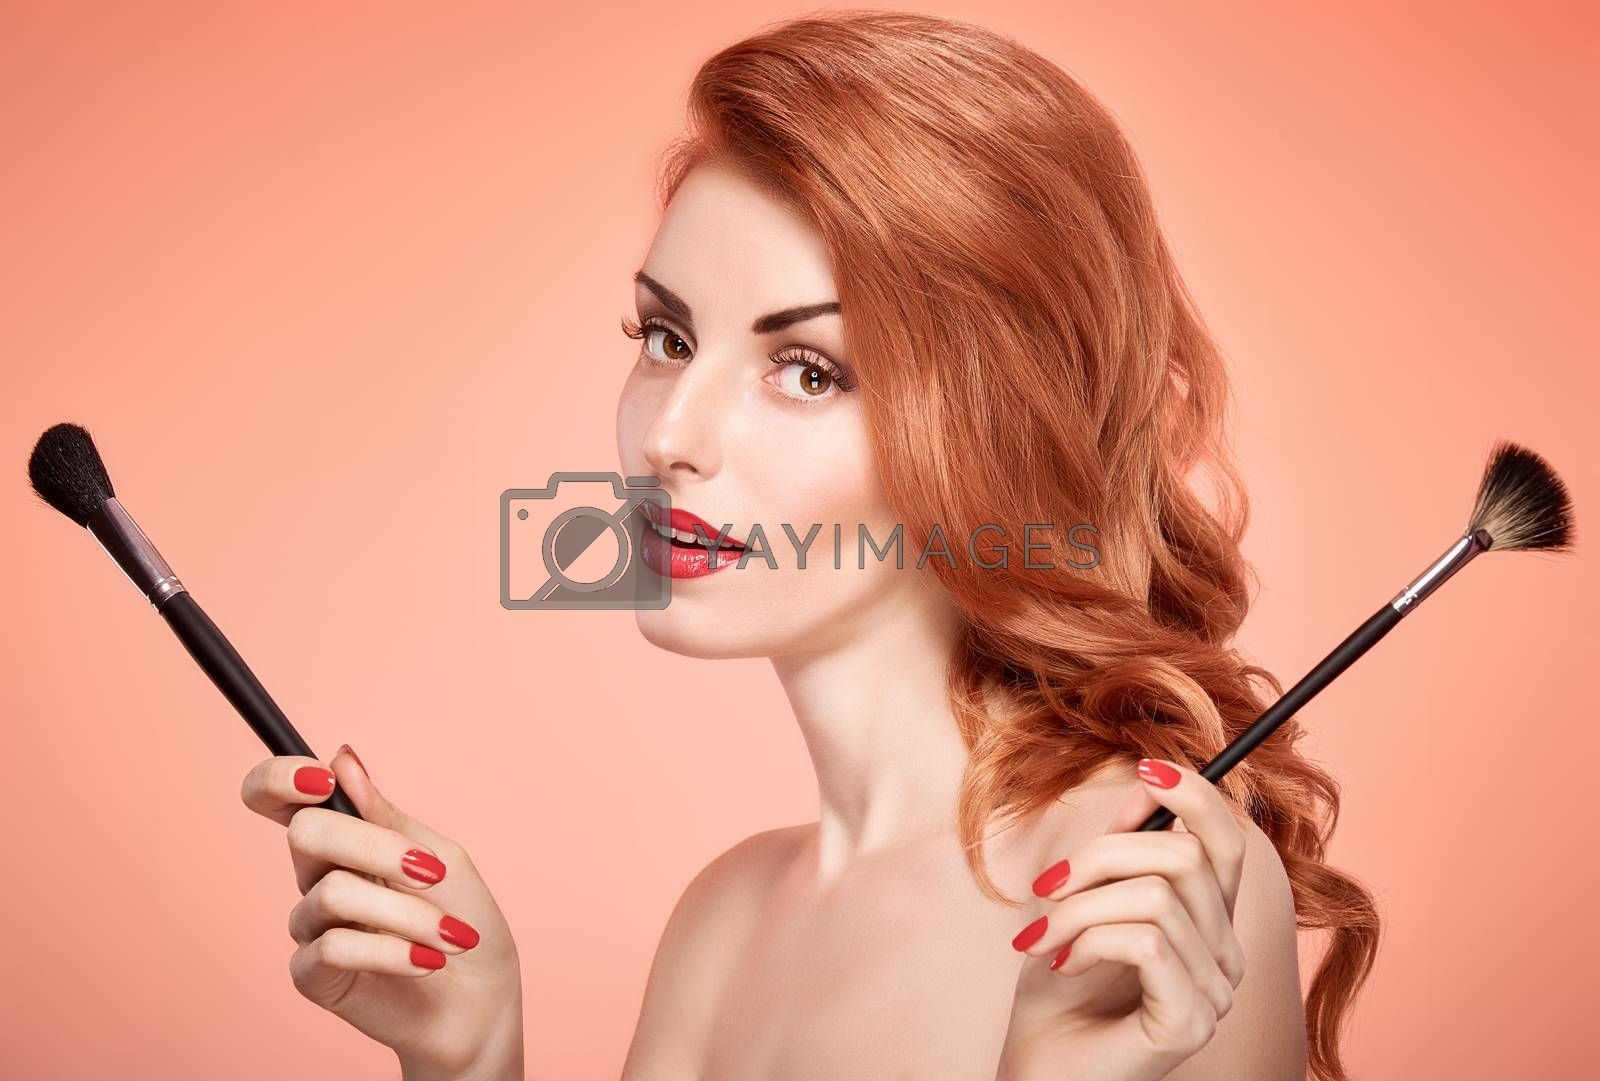 Beauty portrait nude woman smiling, eyelashes, perfect skin, red lips, fashion.Gorgeous sensual attractive pretty redhead sexy model girl with makeup brushes on pink, shiny wavy hair.People, copyspace